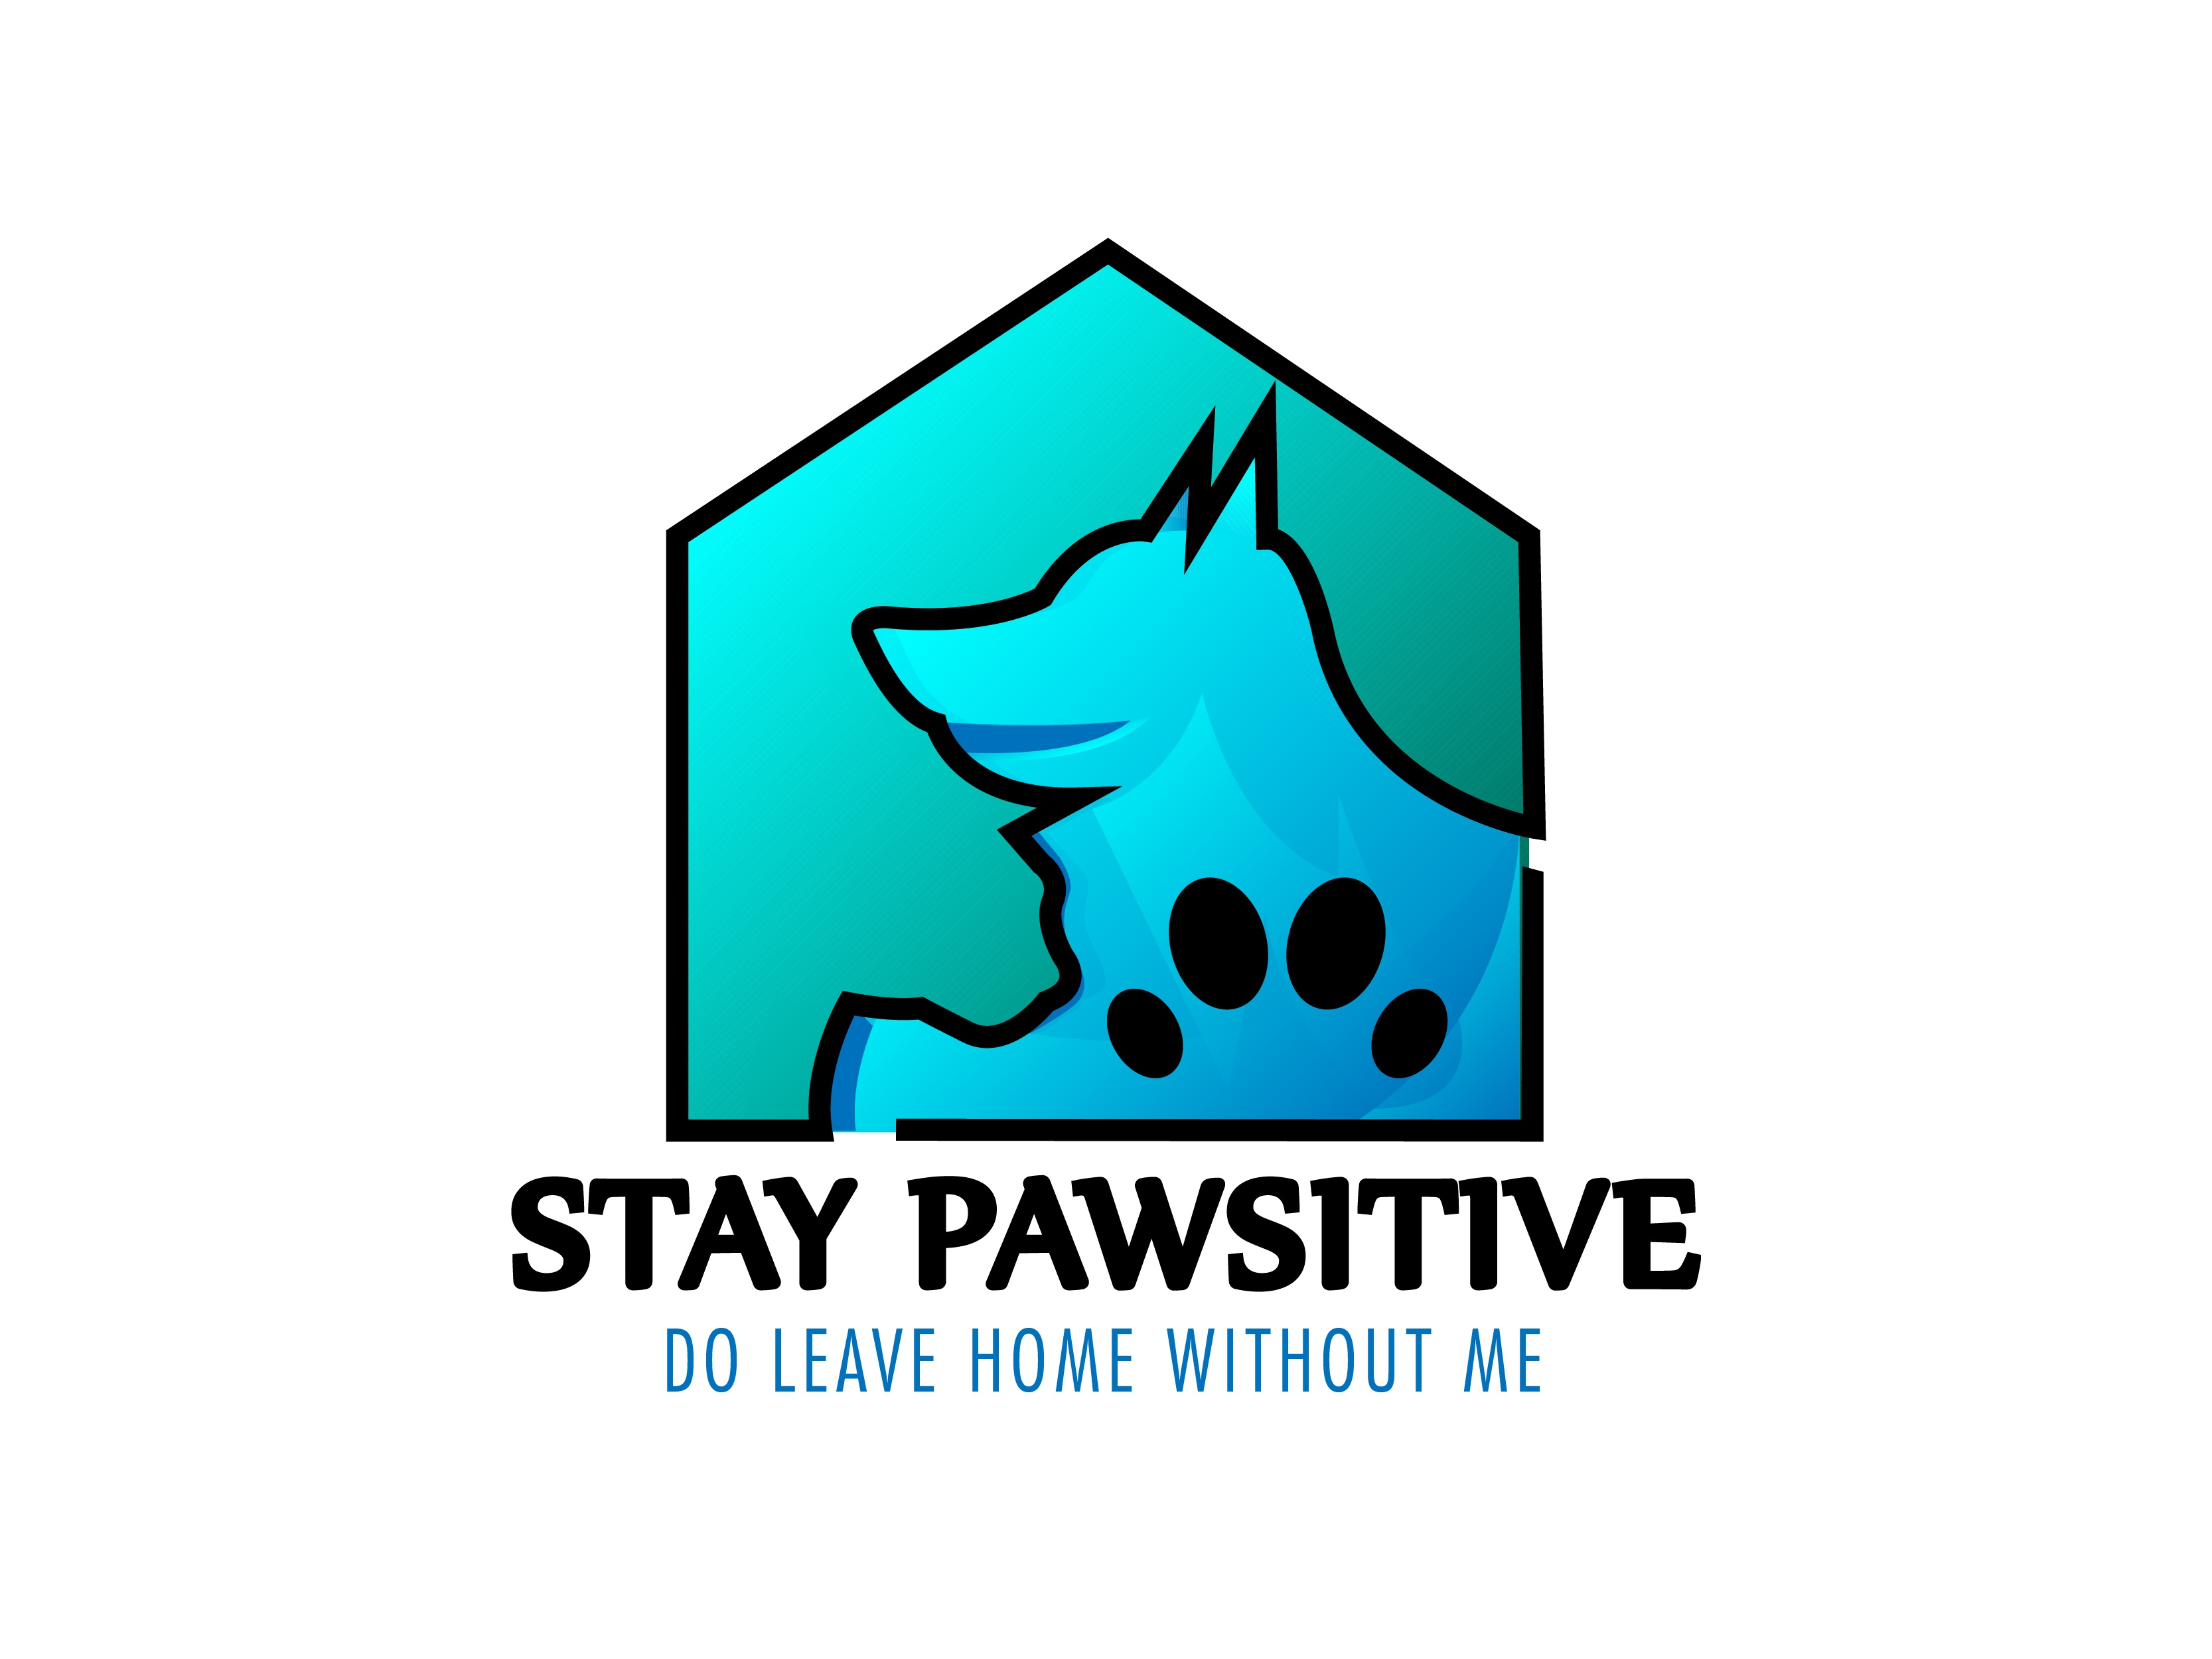 Stay pawsitive dribble 01